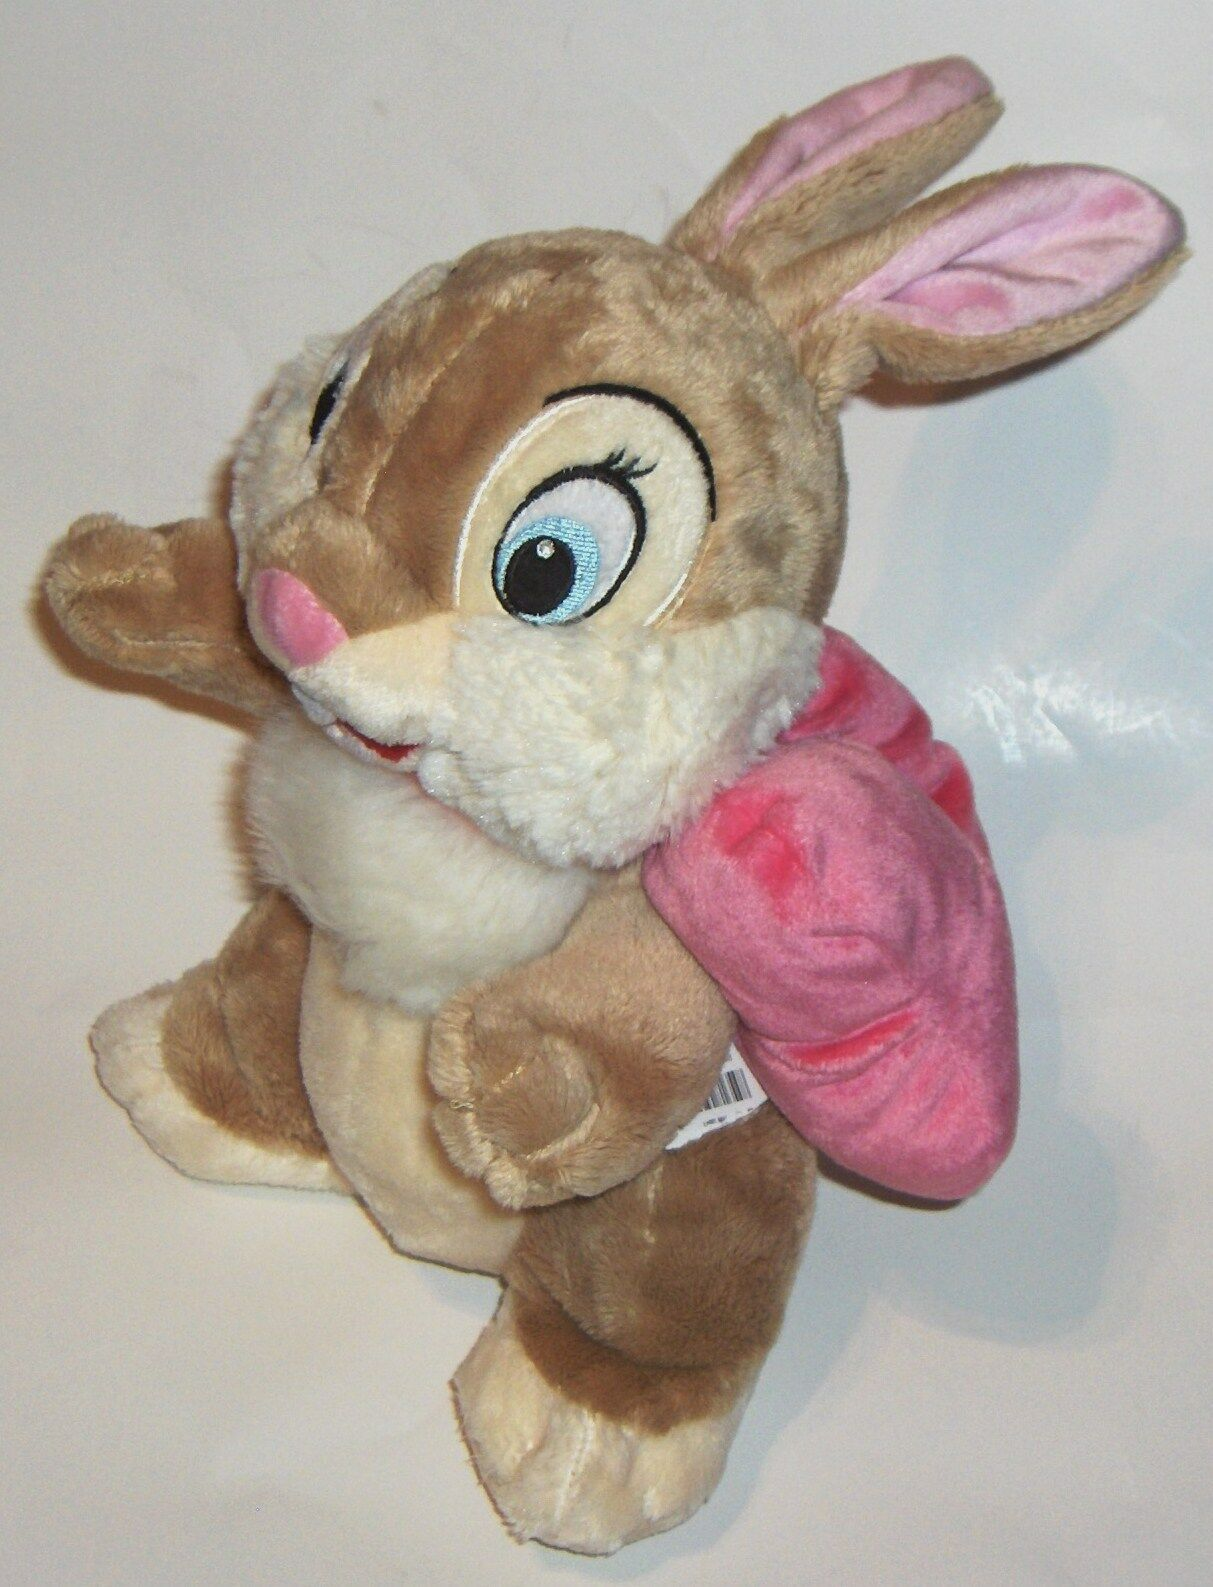 """Thumper""   Authentic Disney Stuffed Animal Thumper - Bambi movie - $19.79"